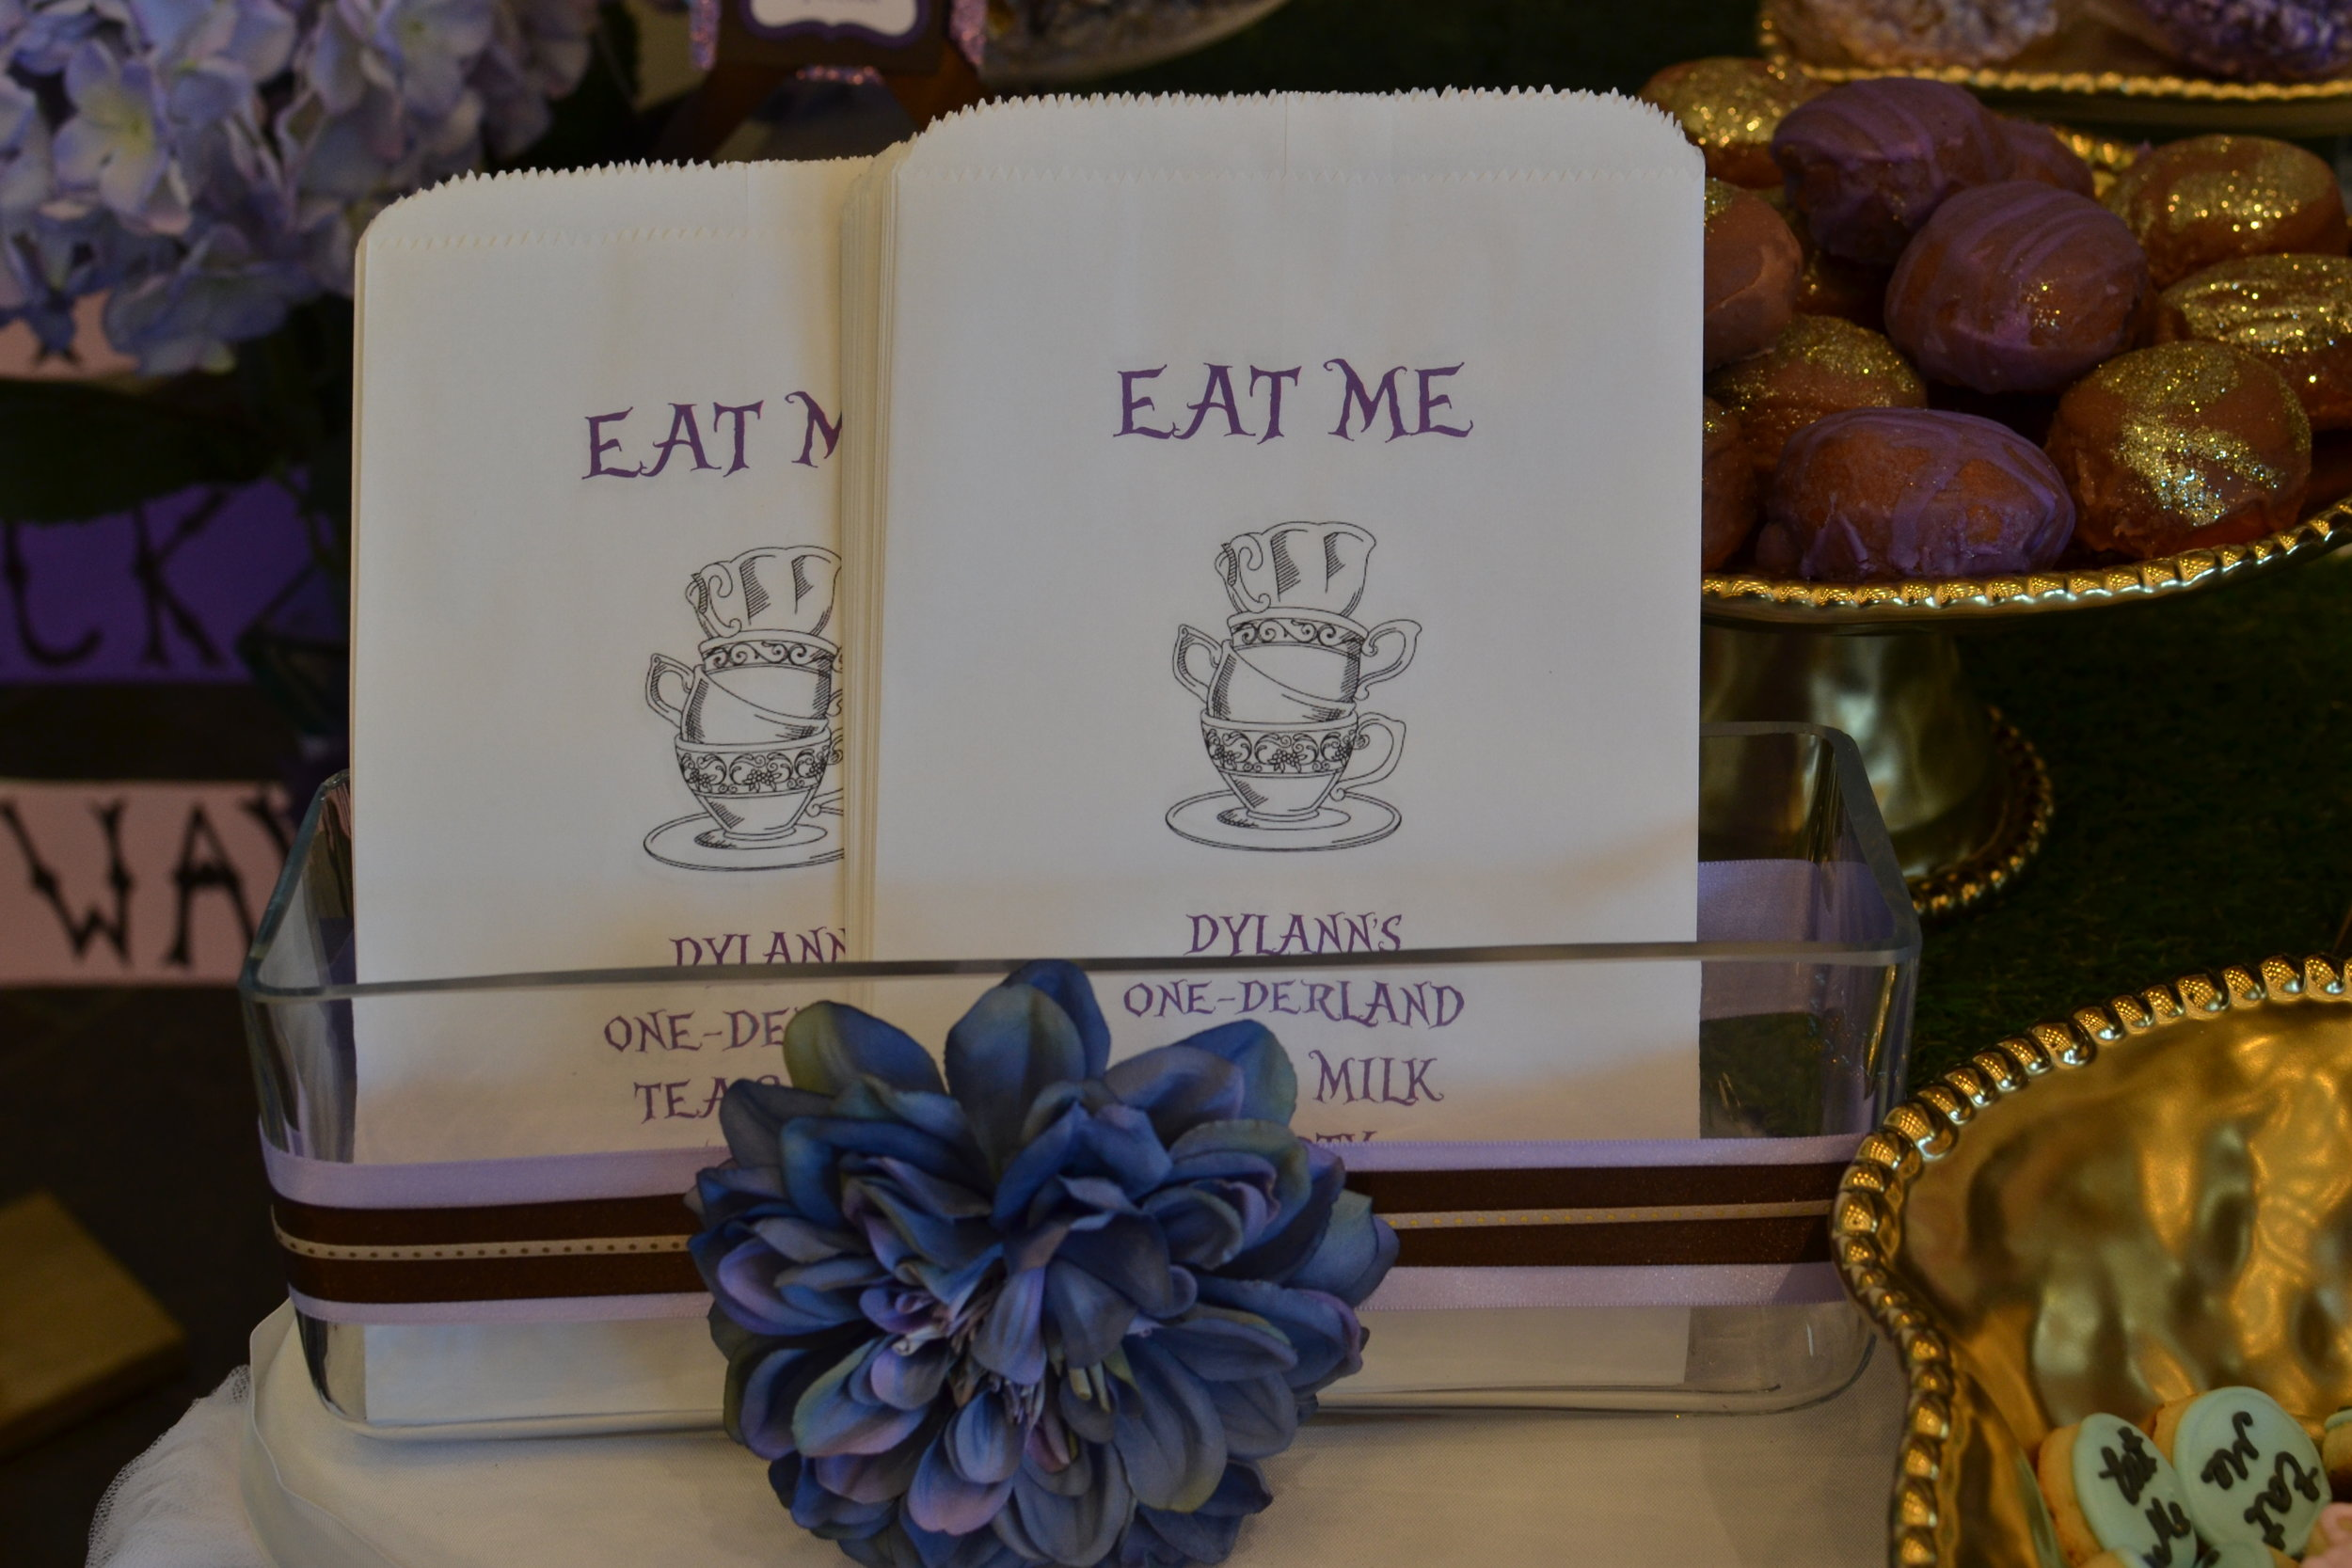 One-derland Tea Party Dessert Table Favor Bags